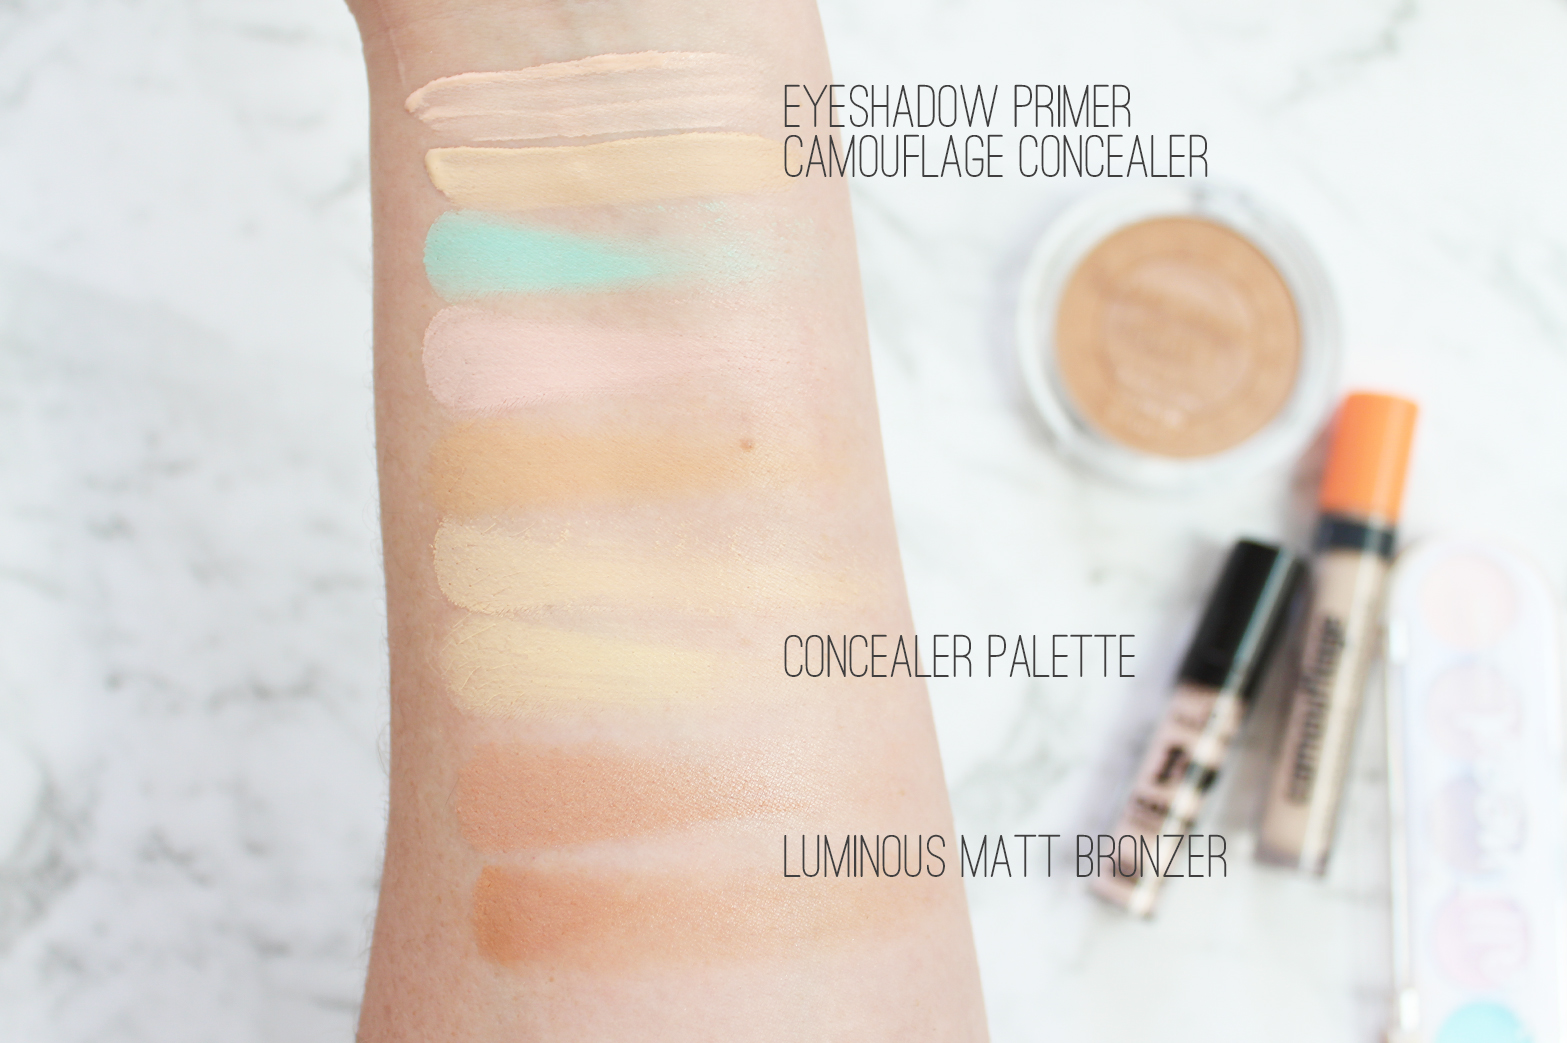 ESSENCE COSMETICS | New Launches - My Must Have Shadows, Concealer Palette + More - CassandraMyee